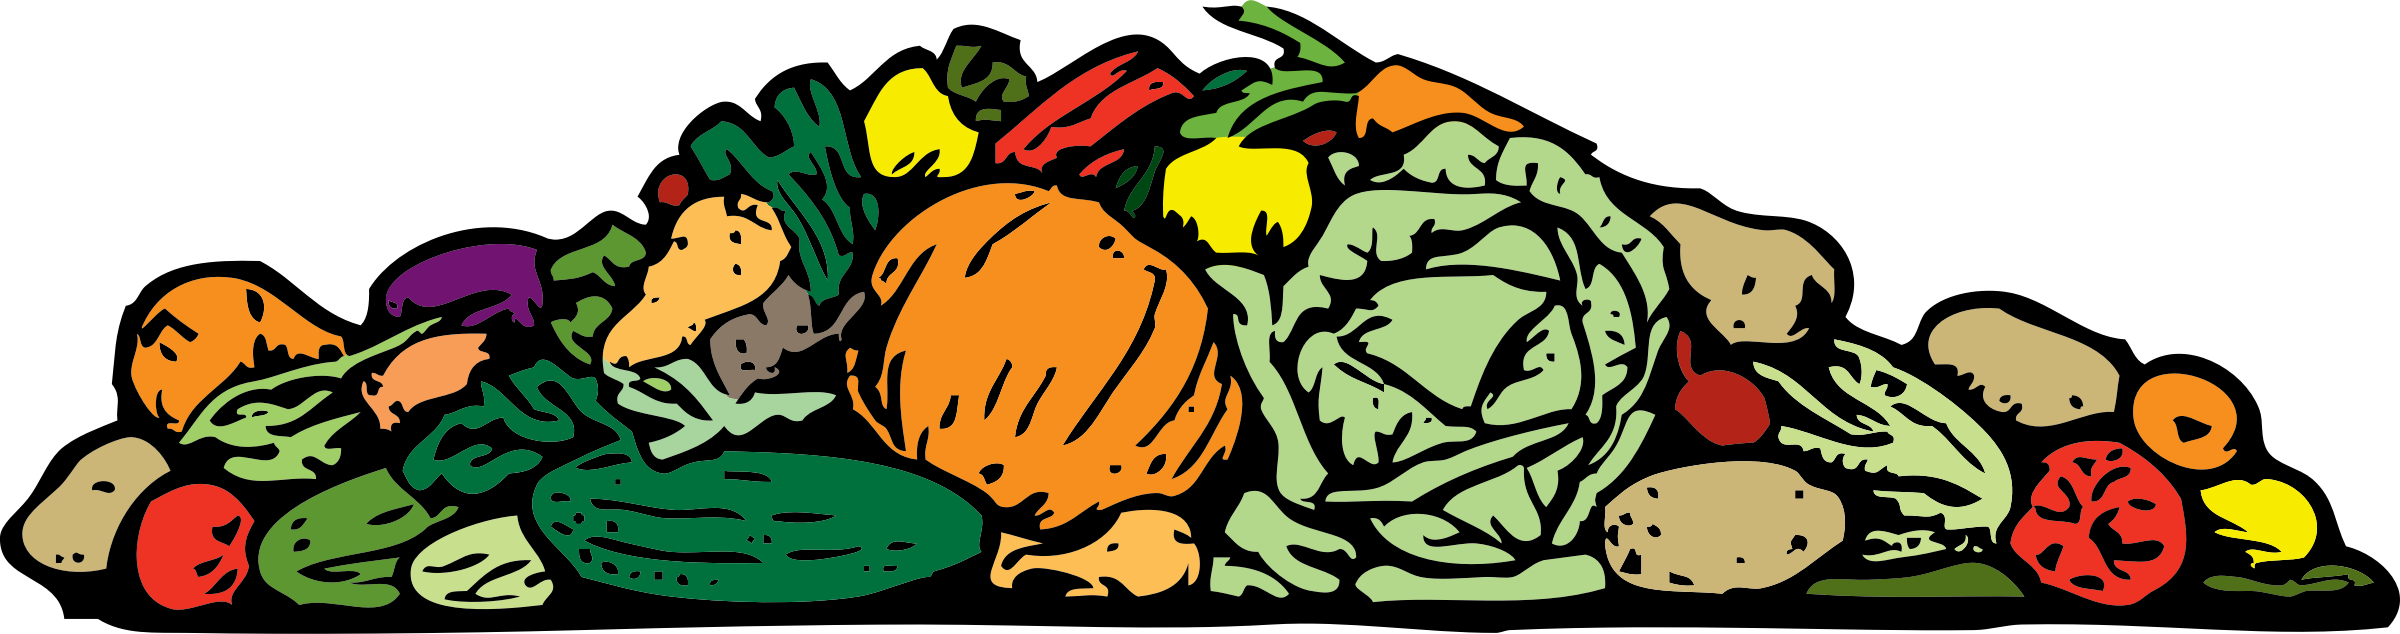 a pile of vegetables by johnny_automatic